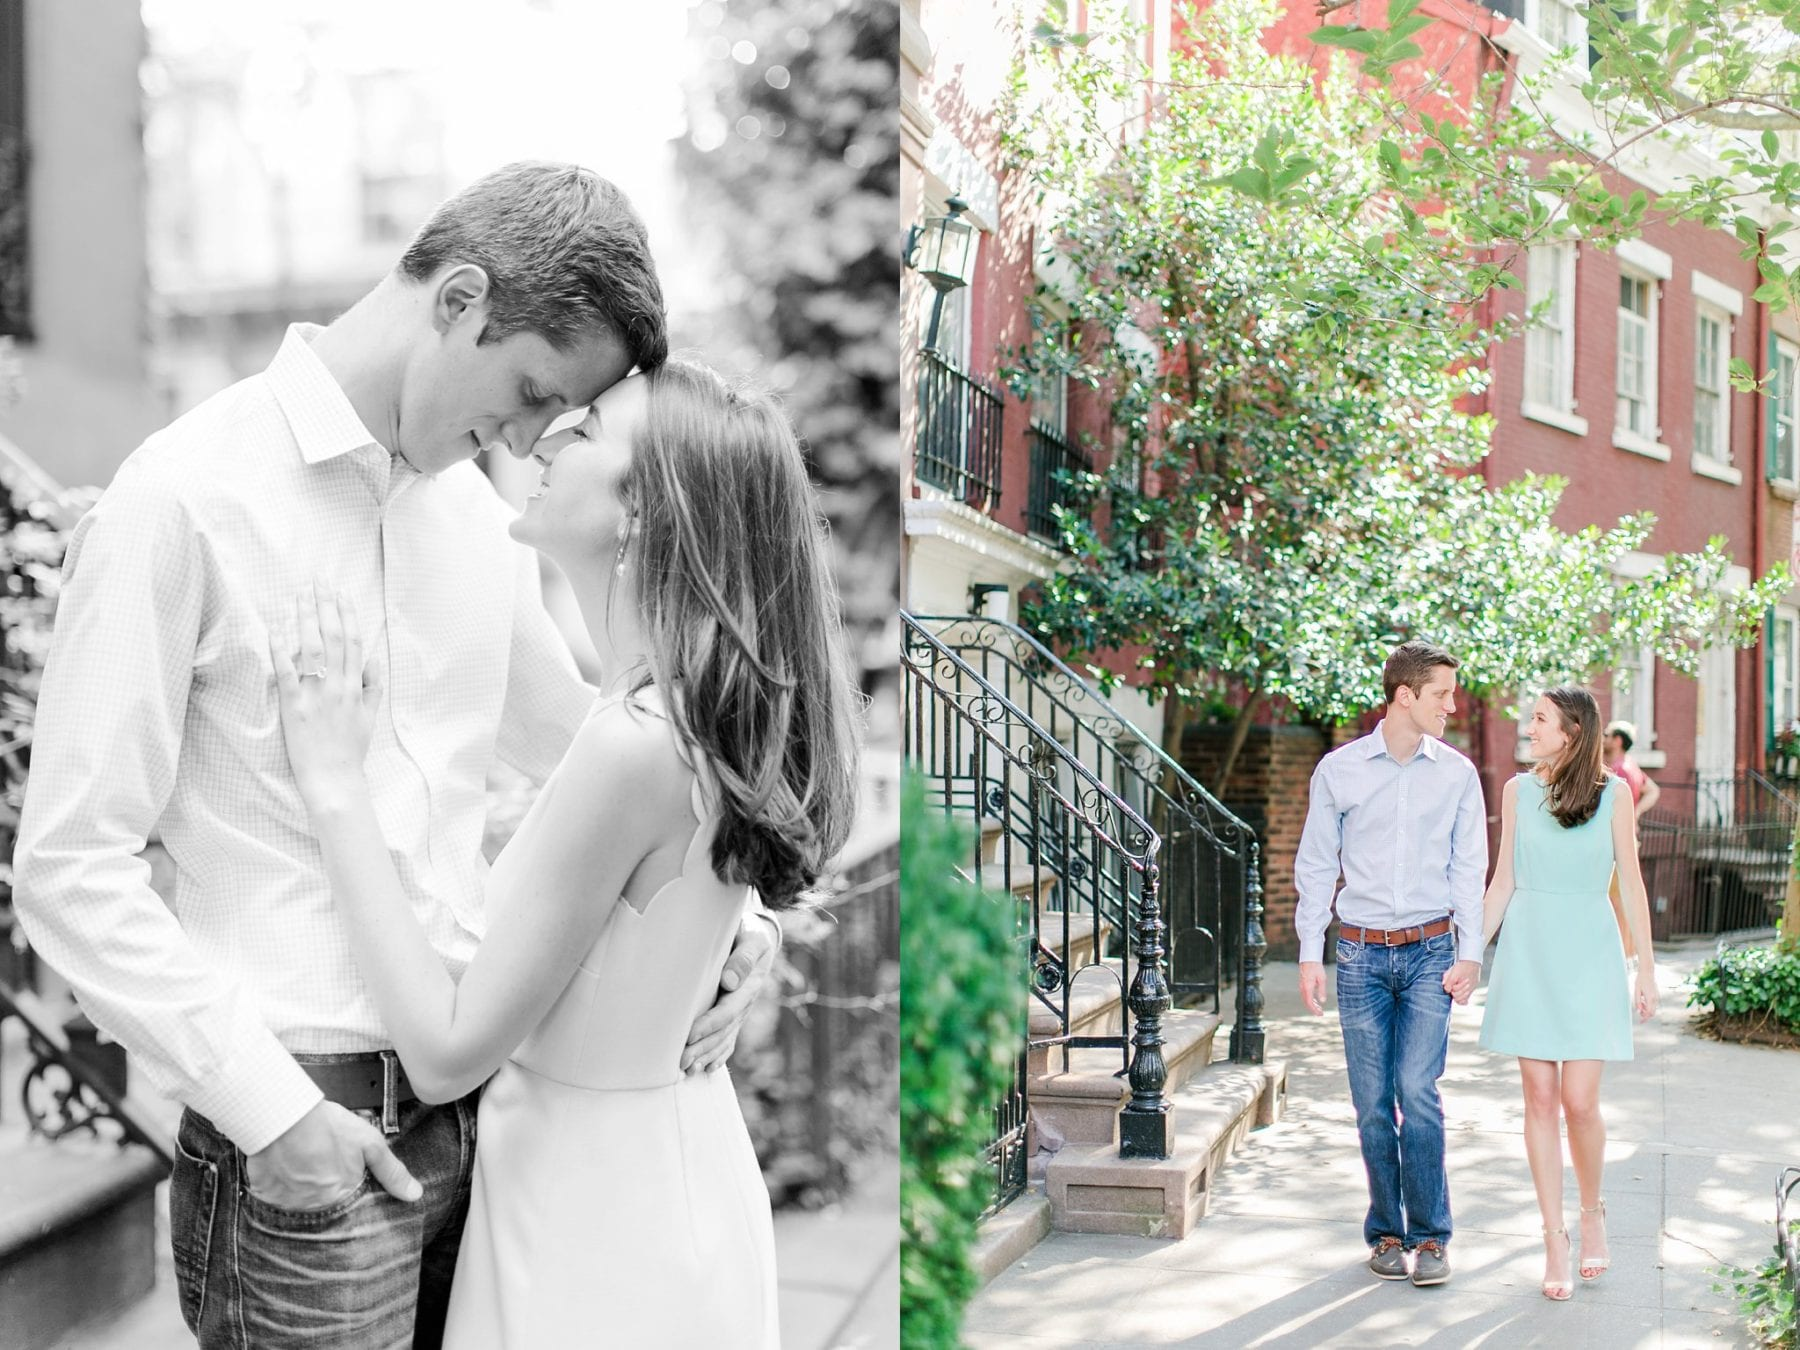 West Village Central Park Engagement Photos NYC Wedding Photographer Megan Kelsey Photography-95.jpg